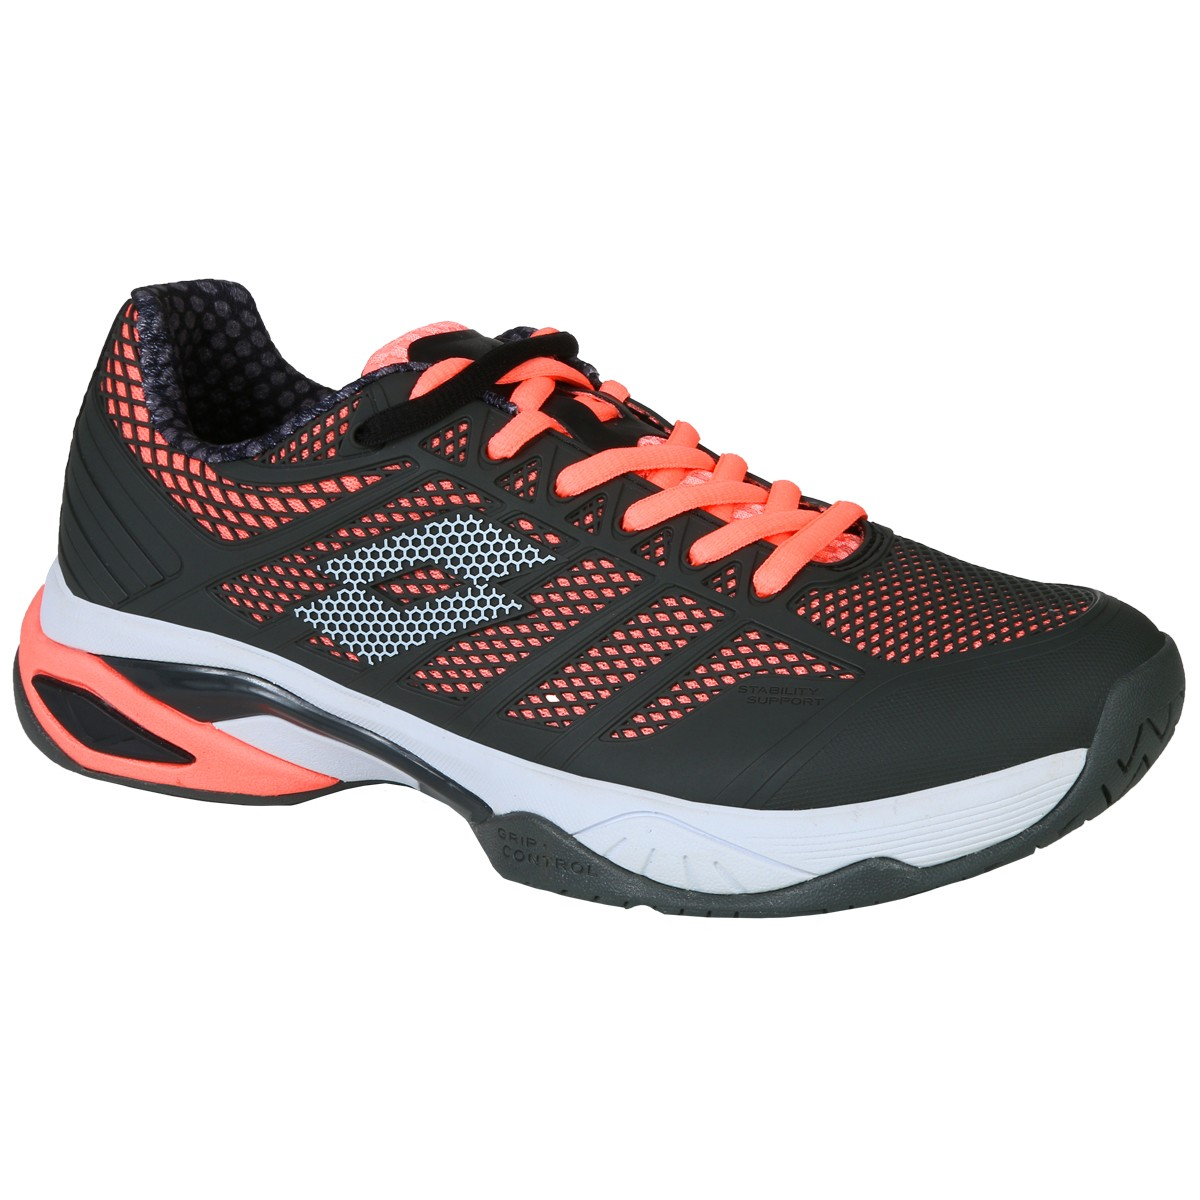 WOMEN'S LOTTO VIPER ULTRA IV ALL COURT SHOES